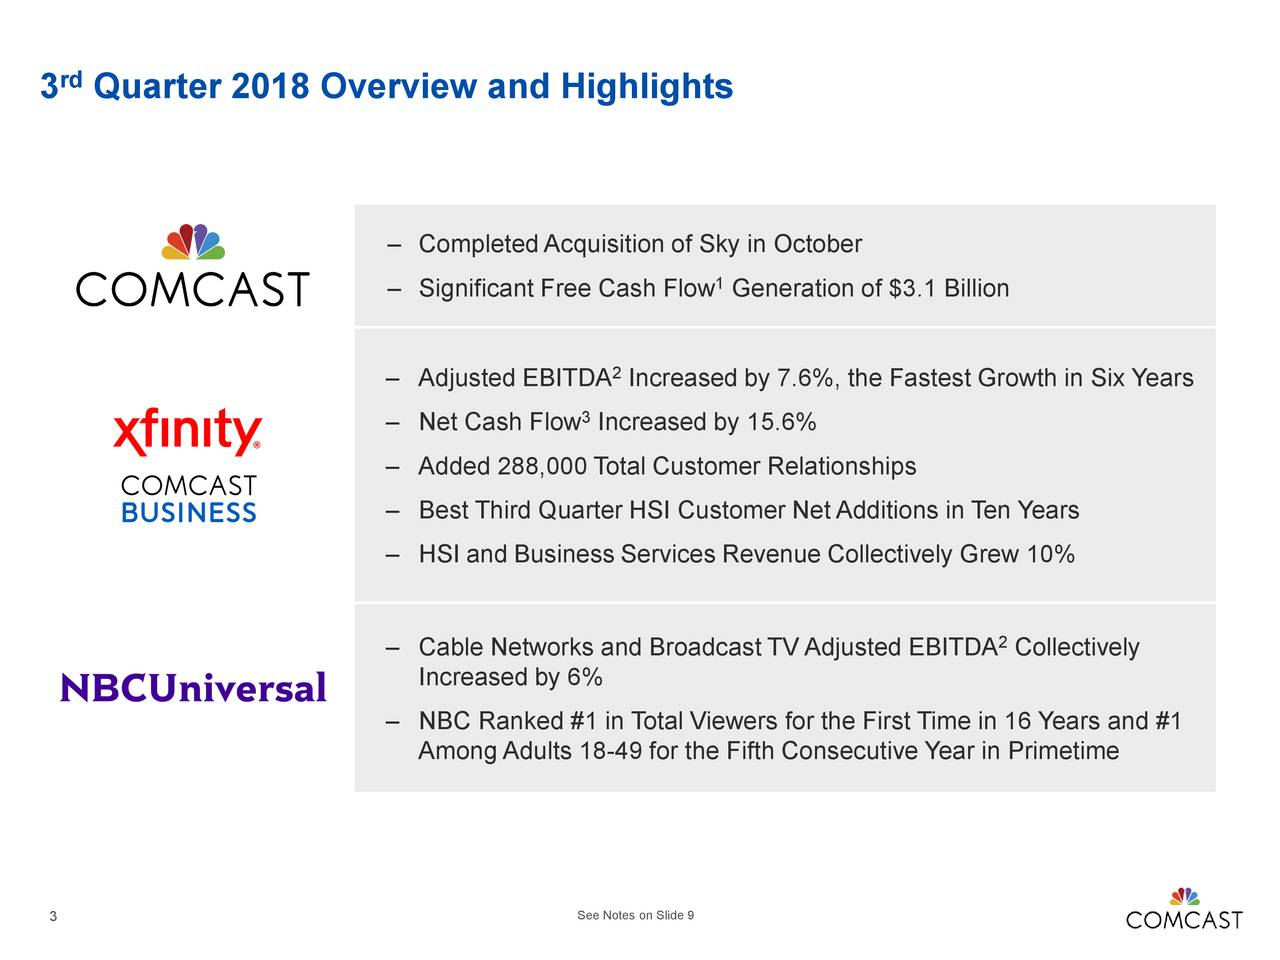 – Completed Acquisition of Sky in October – Significant Free Cash Flow Generation of $3.1 Billion – Adjusted EBITDA 2 Increased by 7.6%, the Fastest Growth in Six Years – Net Cash Flow Increased by 15.6% – Added 288,000 Total Customer Relationships – Best Third Quarter HSI Customer Net Additions in Ten Years – HSI and Business Services Revenue Collectively Grew 10% – Cable Networks and Broadcast TV Adjusted EBITDA Collectively Increased by 6% – NBC Ranked #1 in Total Viewers for the First Time in 16 Years and #1 Among Adults 18-49 for the Fifth Consecutive Year in Primetime 3 See Notes on Slide 9